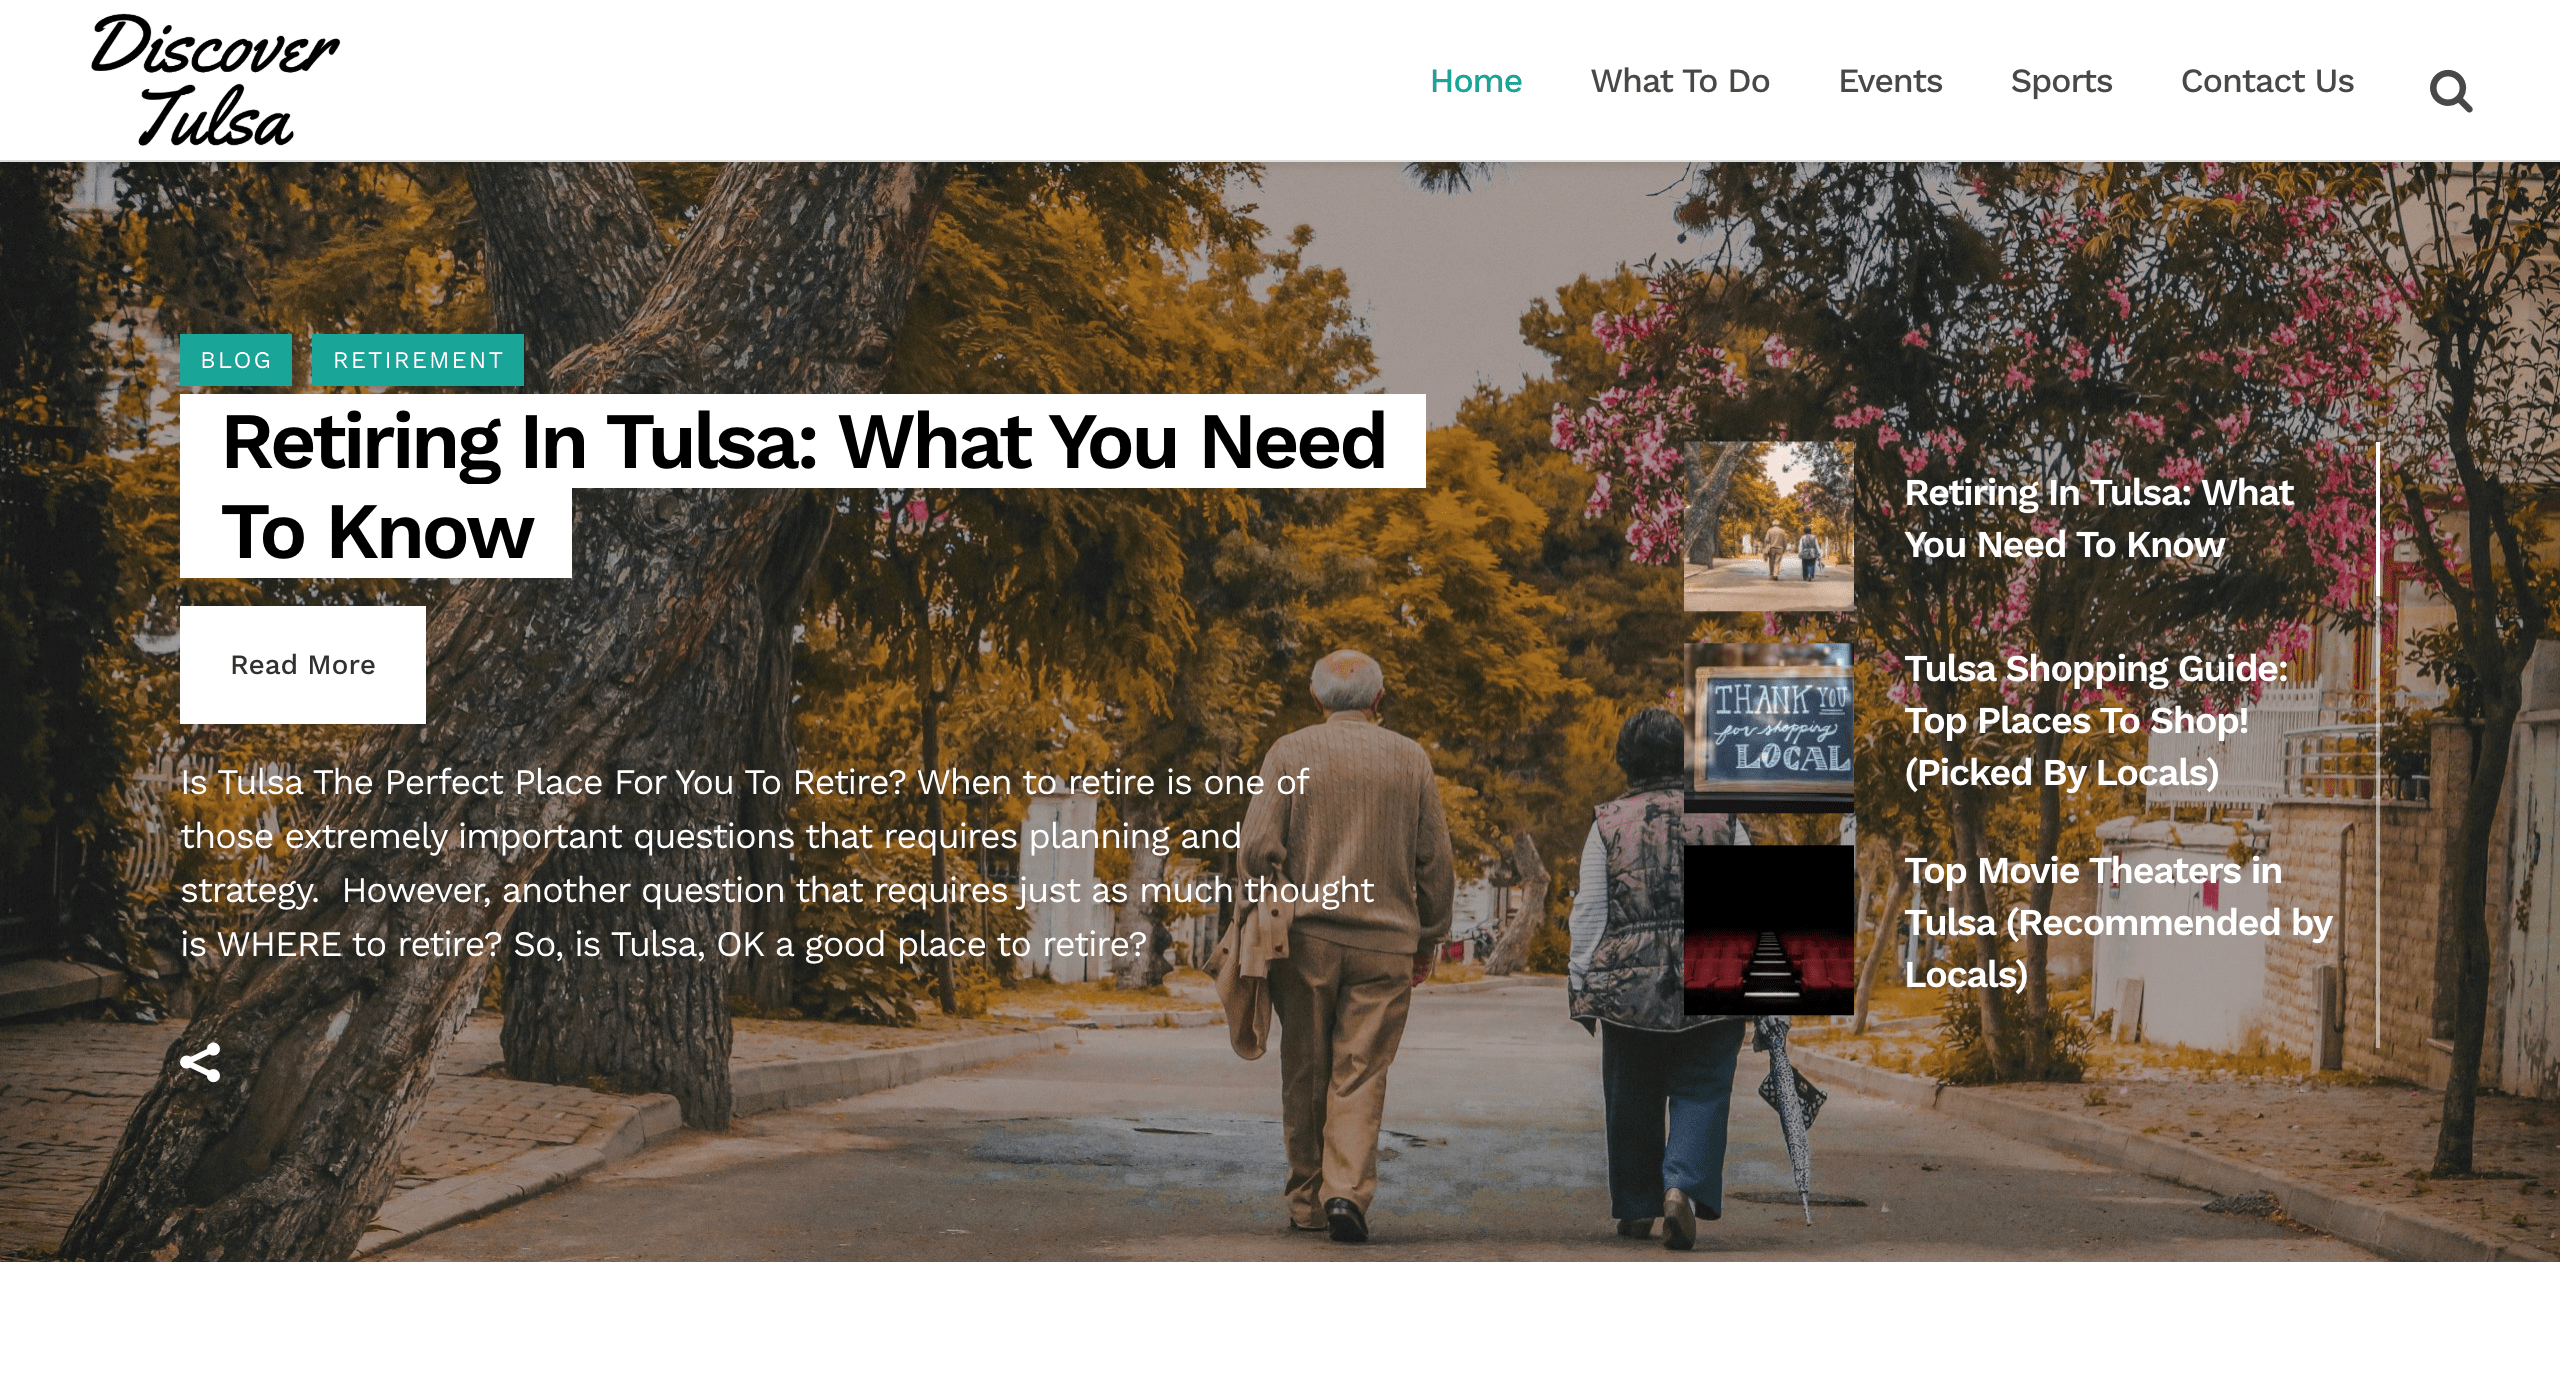 Discover Tulsa Website Homepage